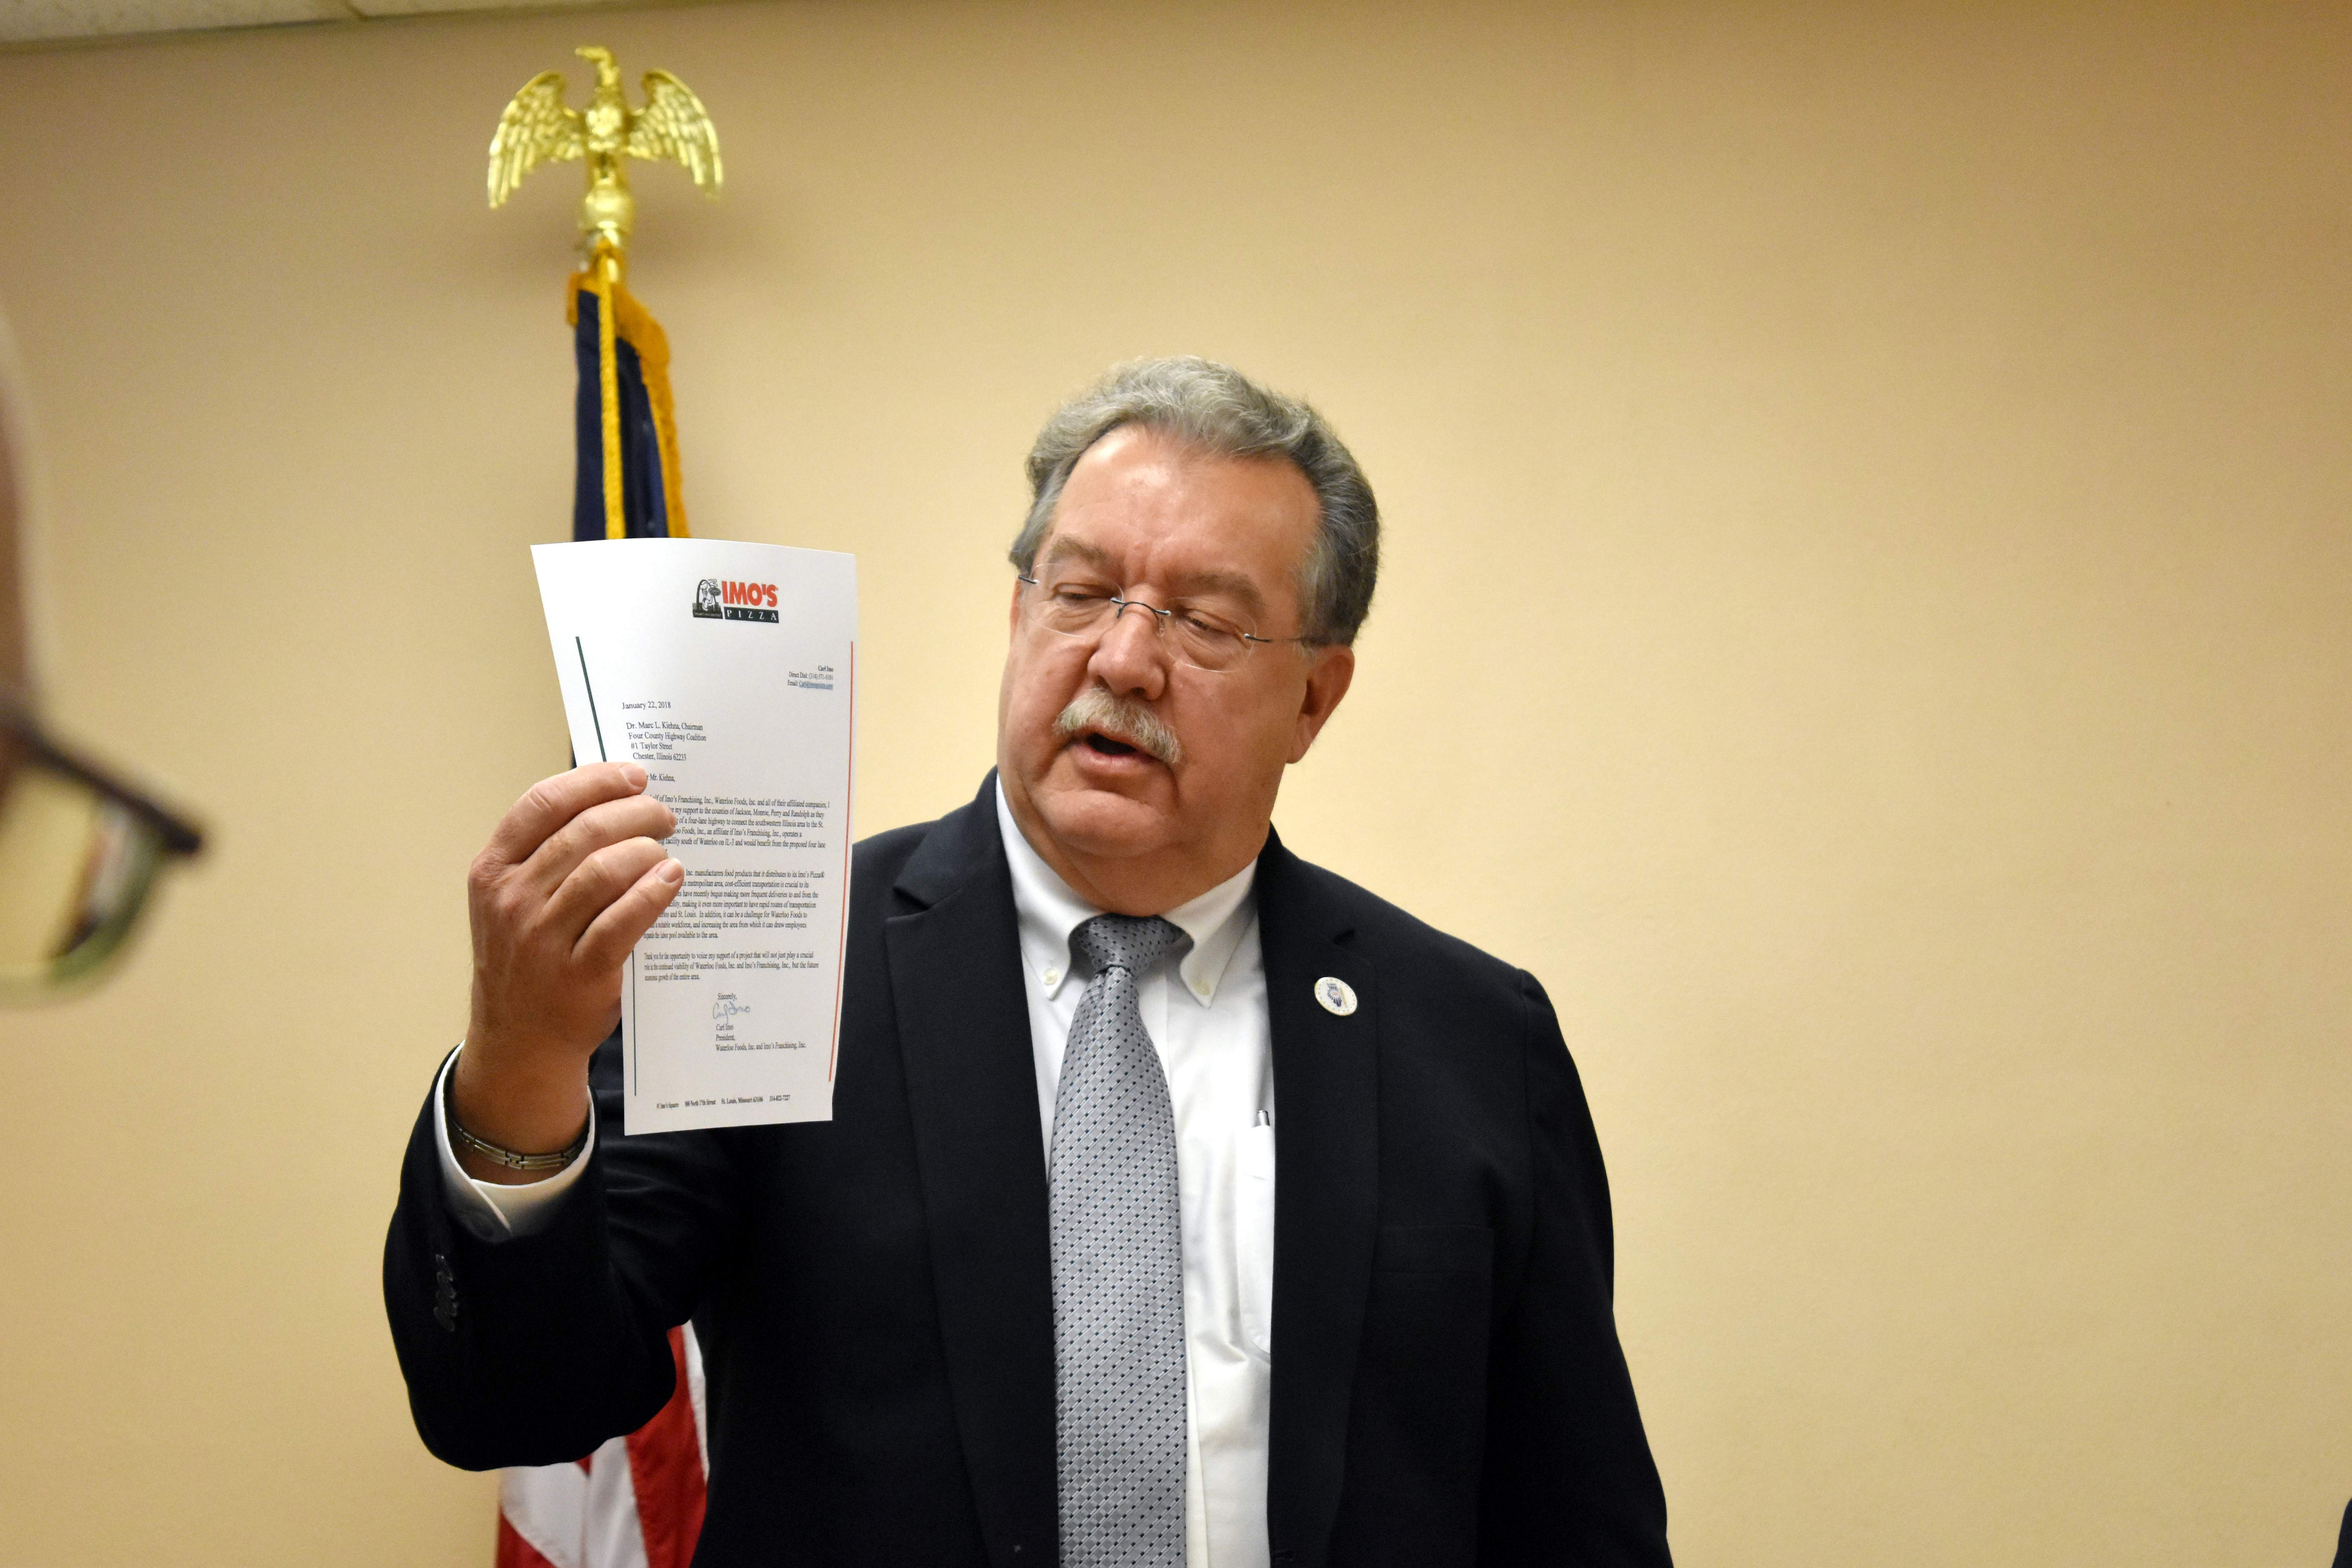 Four County Highway Coalition Chairman Marc Kiehna holds a letter of support he had received from Imo's Pizza. The letter was dated Jan. 22.